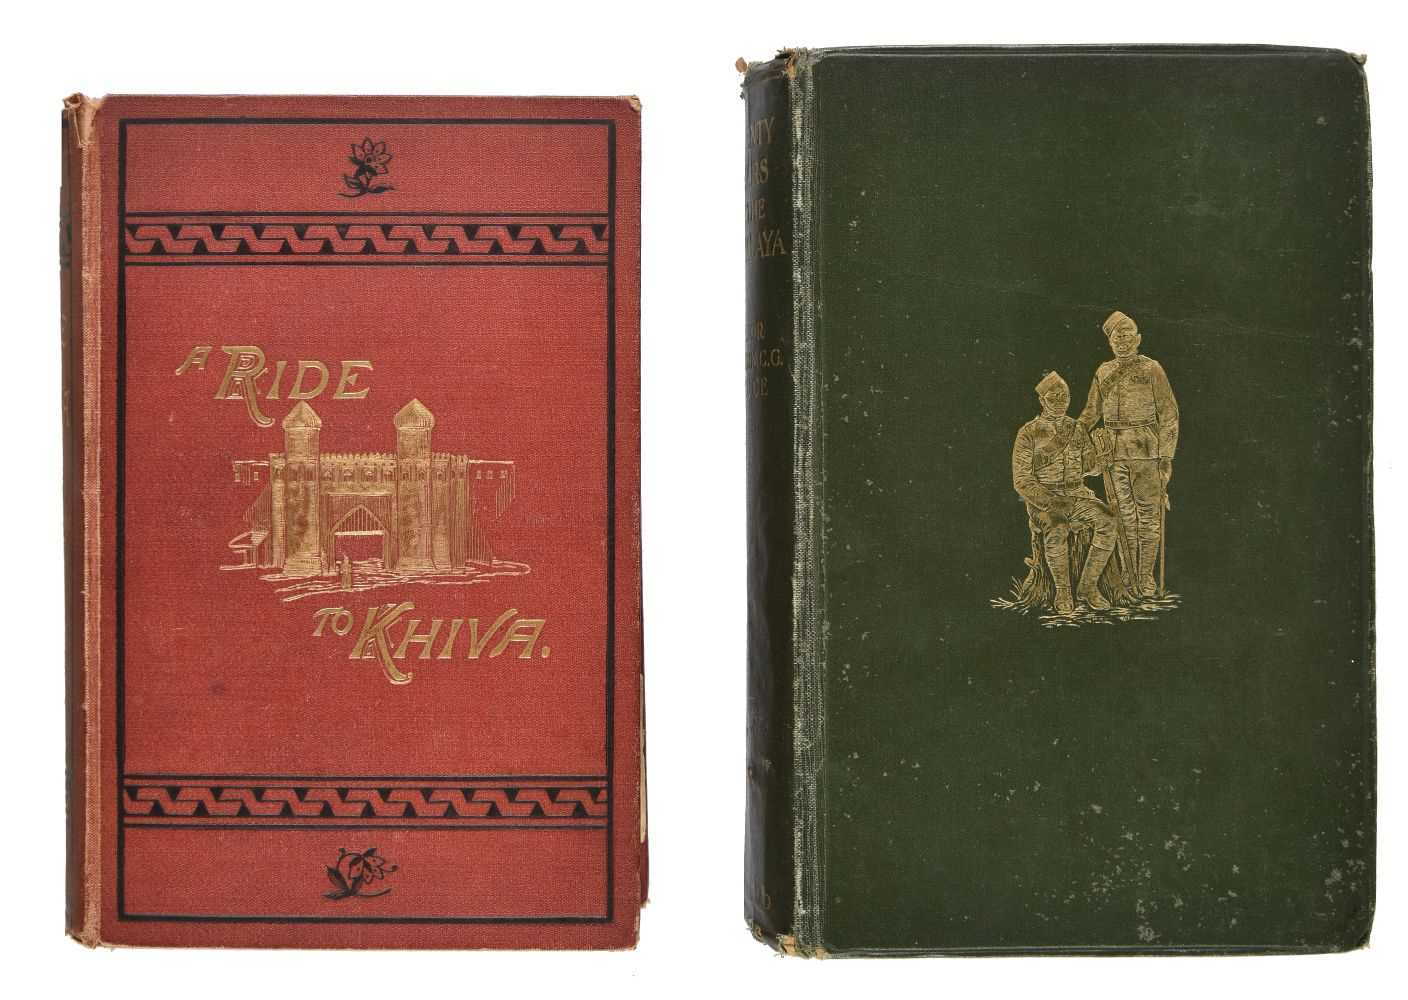 Lot 5-Burnaby (Frederick). A Ride to Khiva, 1st edition, 1876, [and others]